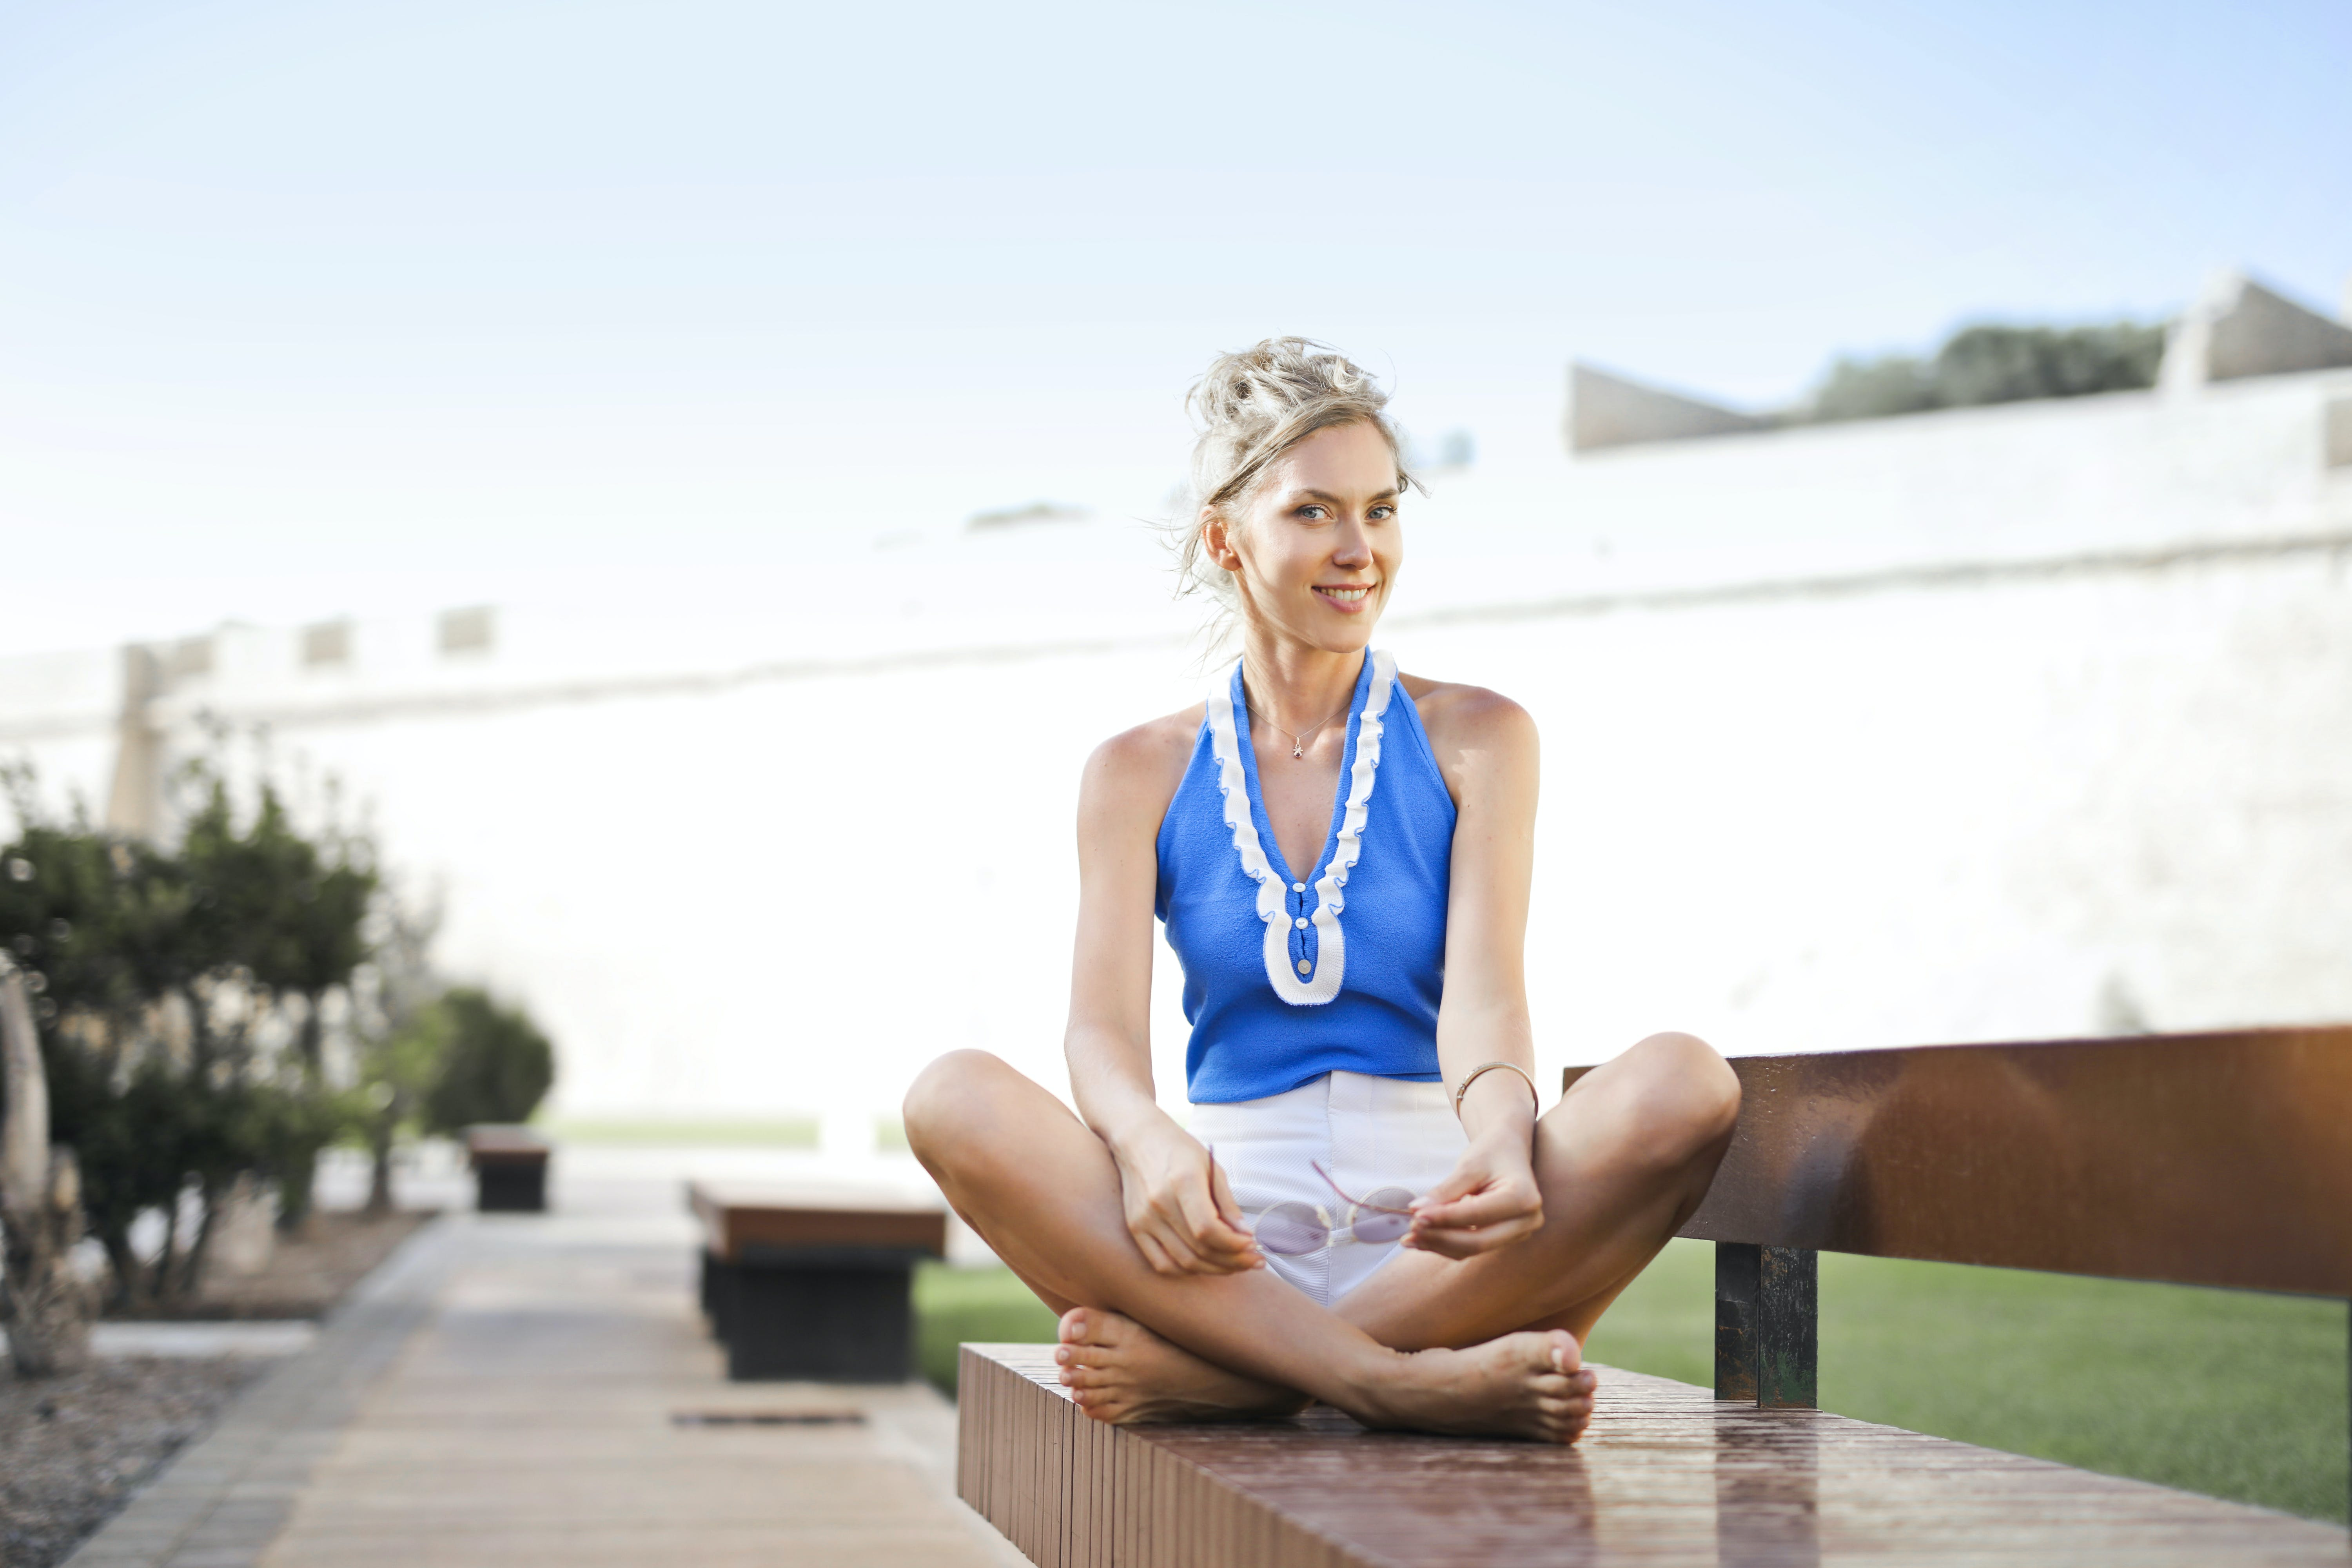 Woman Sitting on Bench Near White Wall Under White Sky